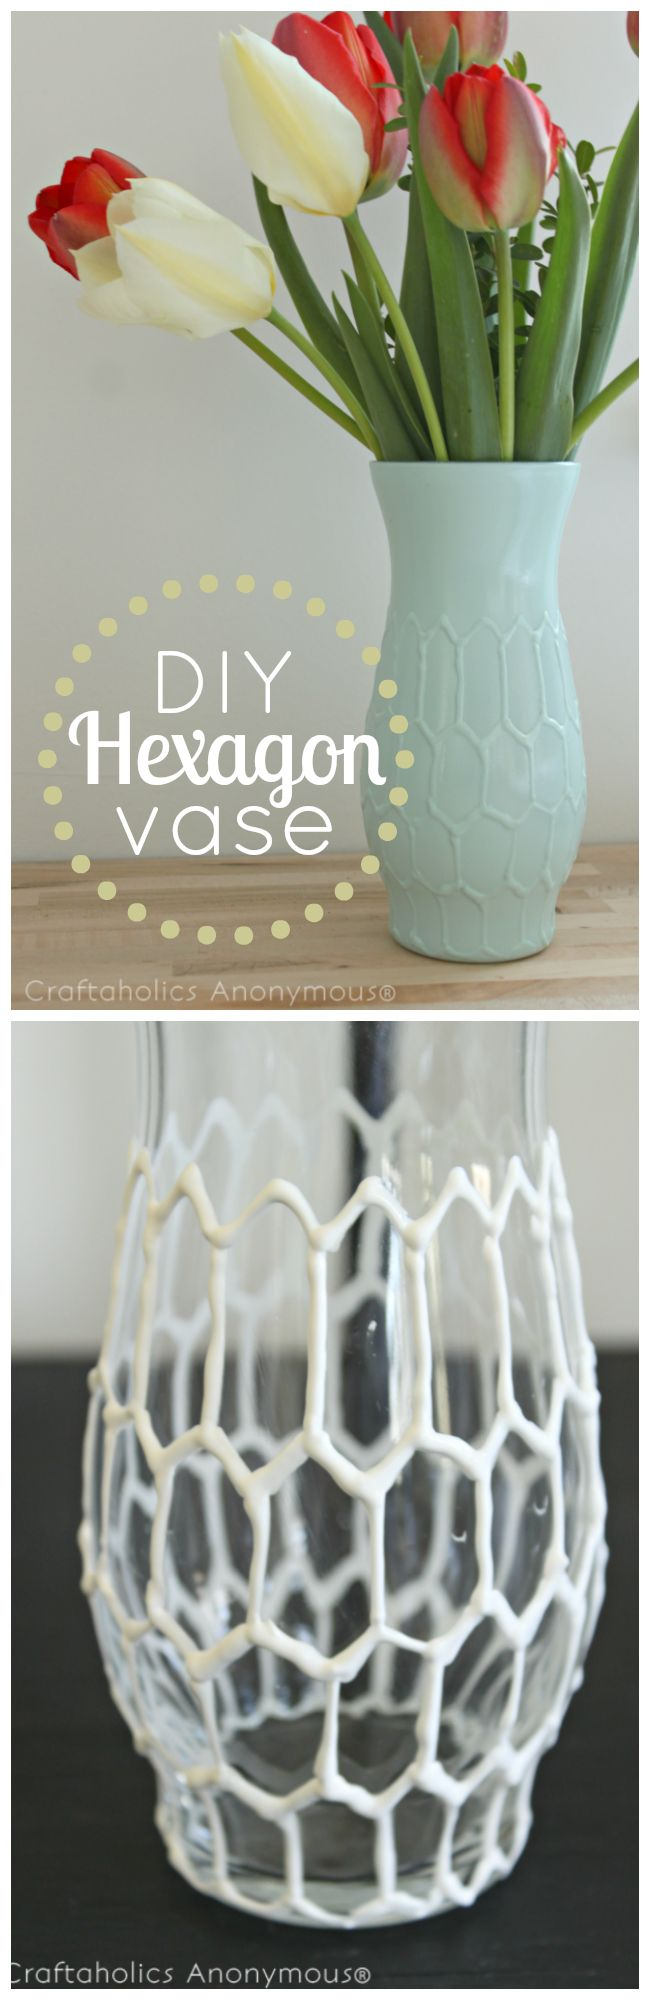 DIY hexagon vase tutorial. Seriously in love with this vase! #hexagon #craft: Honeycombs Vase, Hexagons Vase, Glasses Vase, Diy Honeycombs, Vase Tutorial, Design Vase, Hexagons Crafts, Diy Hexagons, Diy Vase